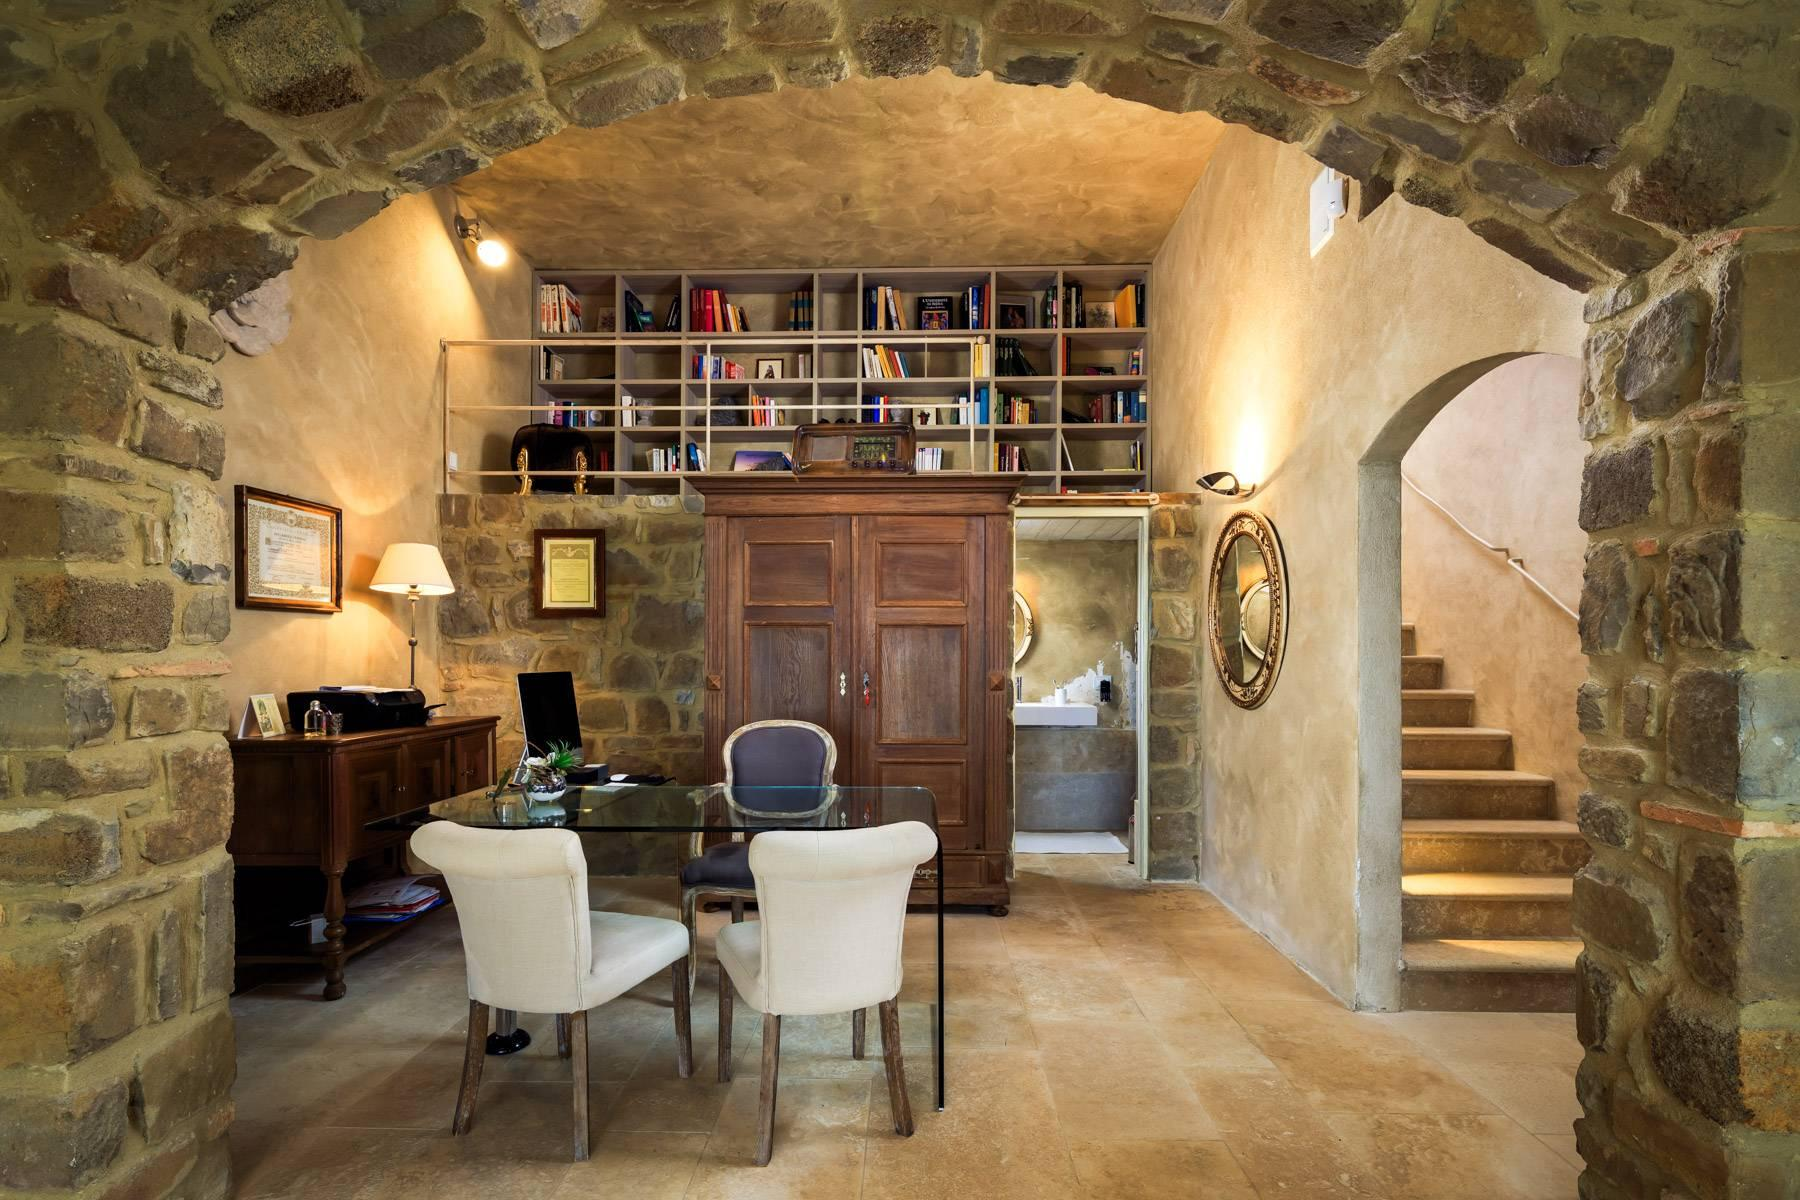 Marvelous newly restored farmhouse close to Montalcino - 10